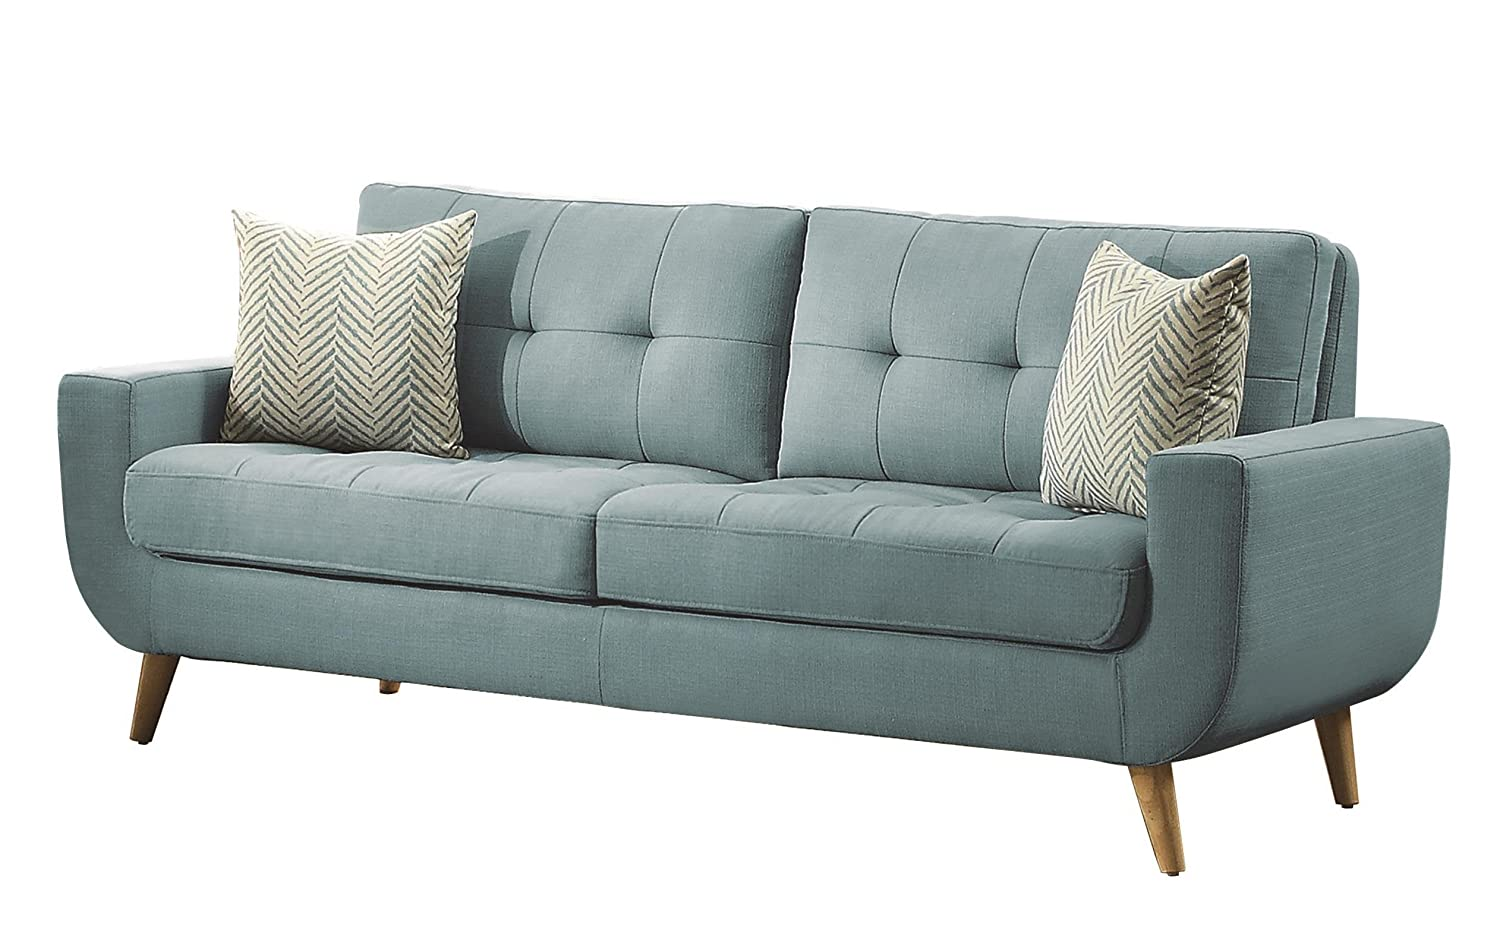 Homelegance Deryn Mid-Century Modern Sofa with Tufted Back and Two Herringbone Throw Pillows - Teal